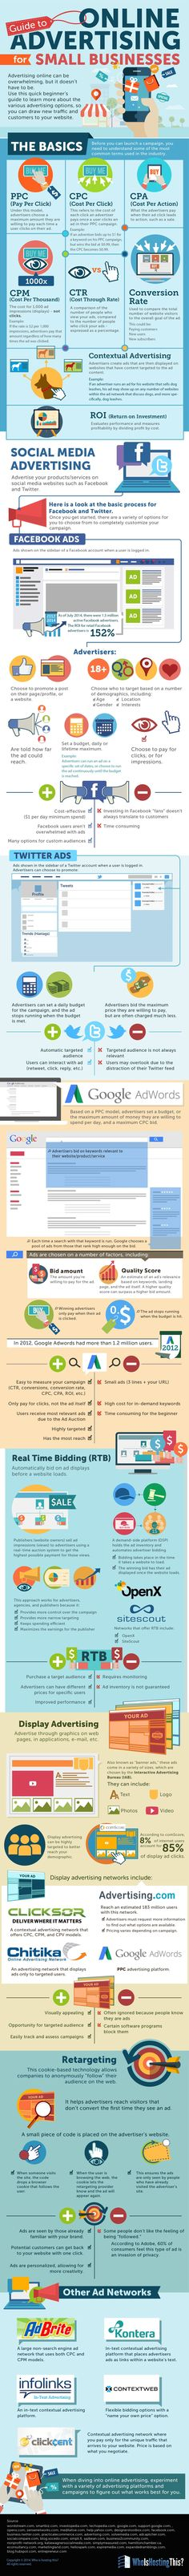 Have you experimented with online advertising? Do you know the difference between CPC, CPA and PPC? How will you measure the ROI of your efforts? Does this alphabet soup make your head spin? Check out this infographic from Who is Hosting This for details about different advertising options before you invest.